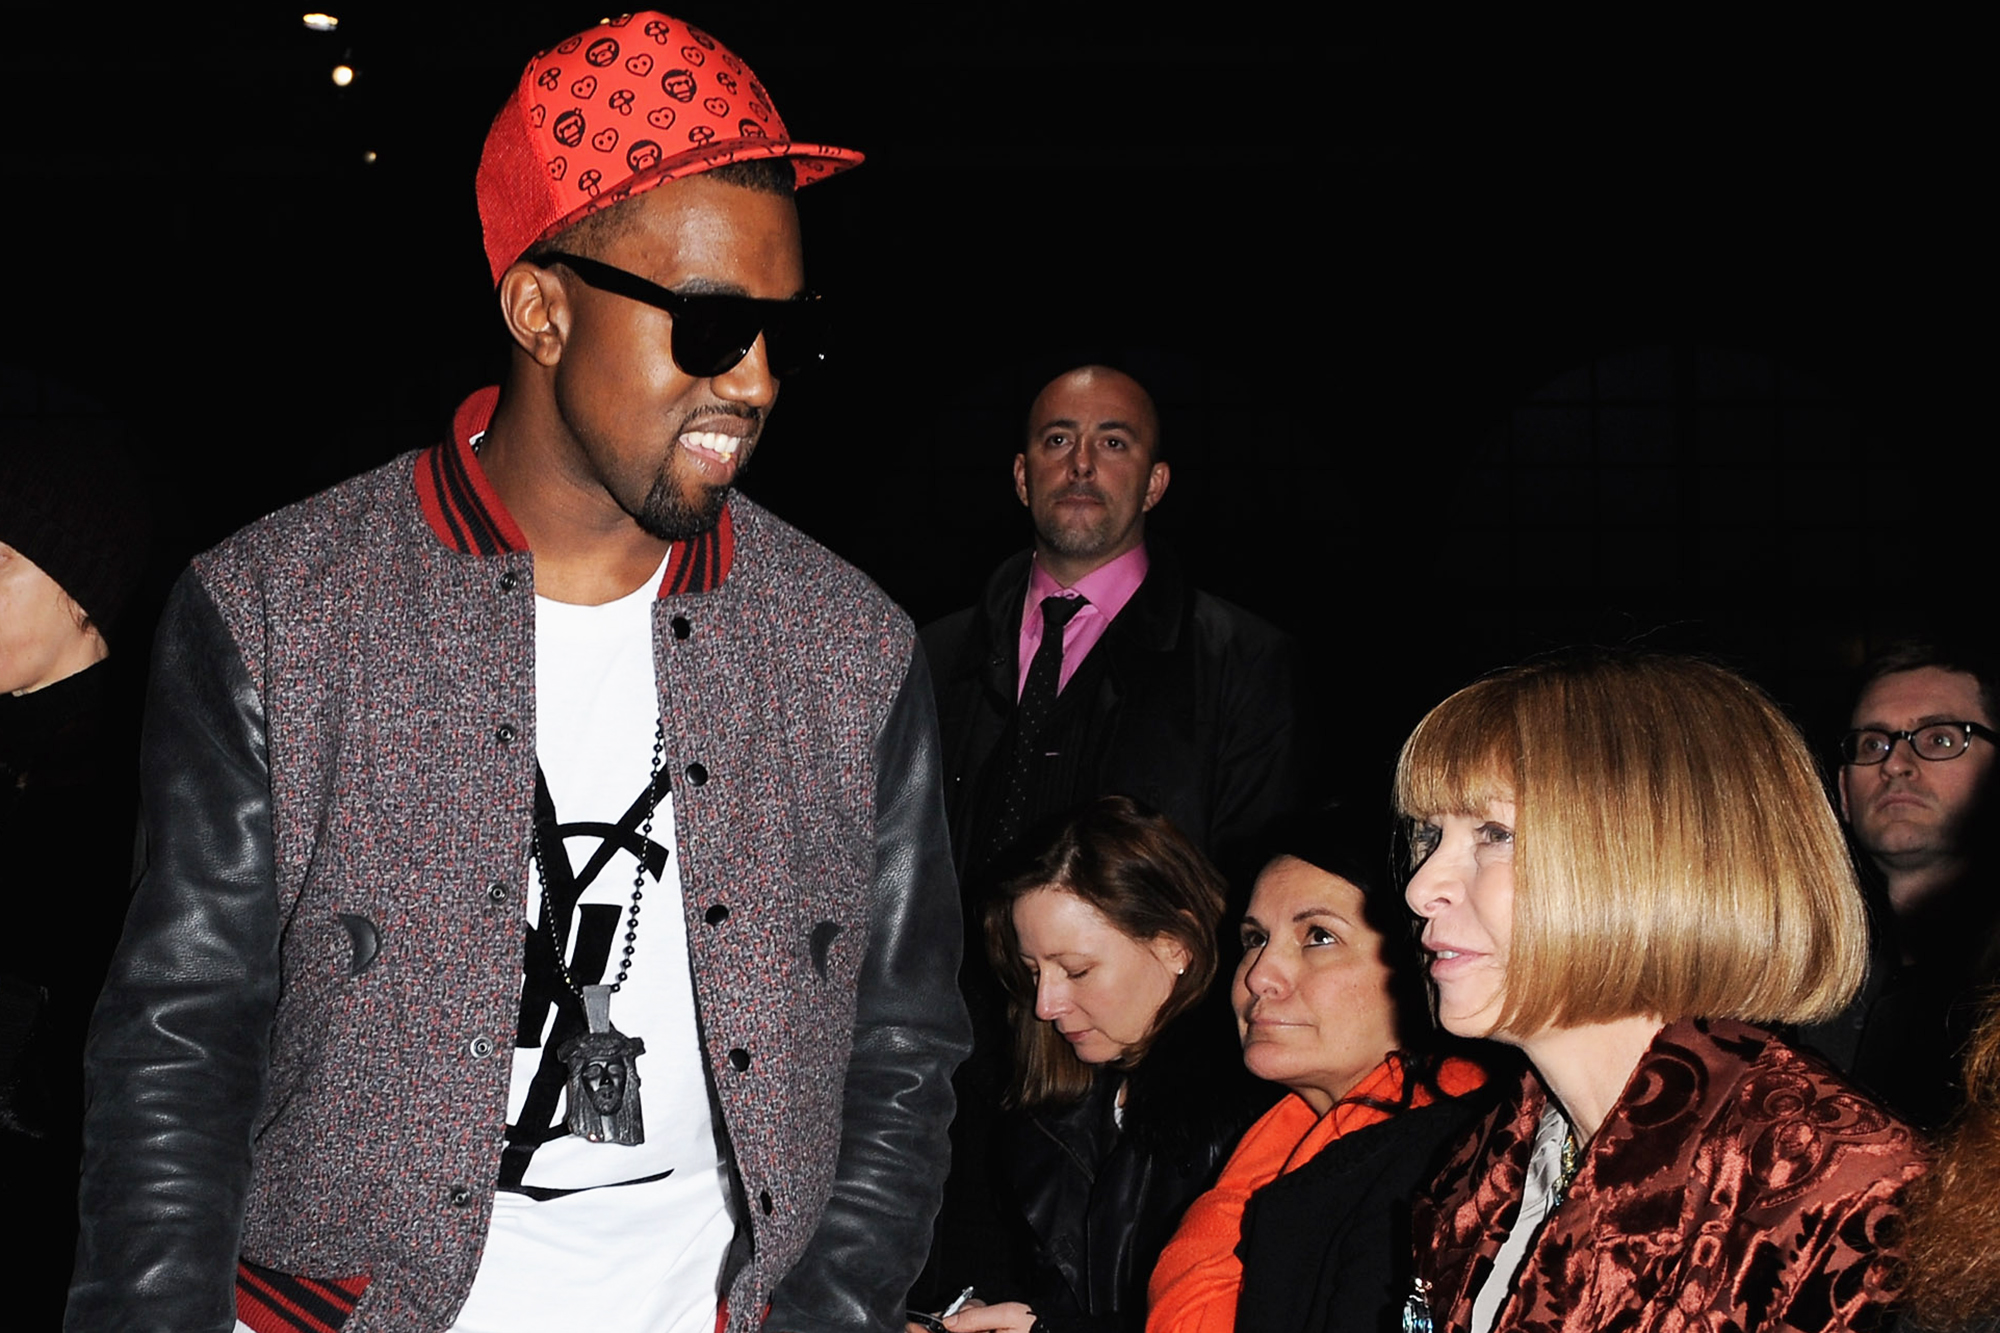 Kanye West speaks with Anna Wintour as they attend the Givenchy Ready-to-Wear A/W 2009 fashion show during Paris Fashion Week in Paris, on March 8, 2009.